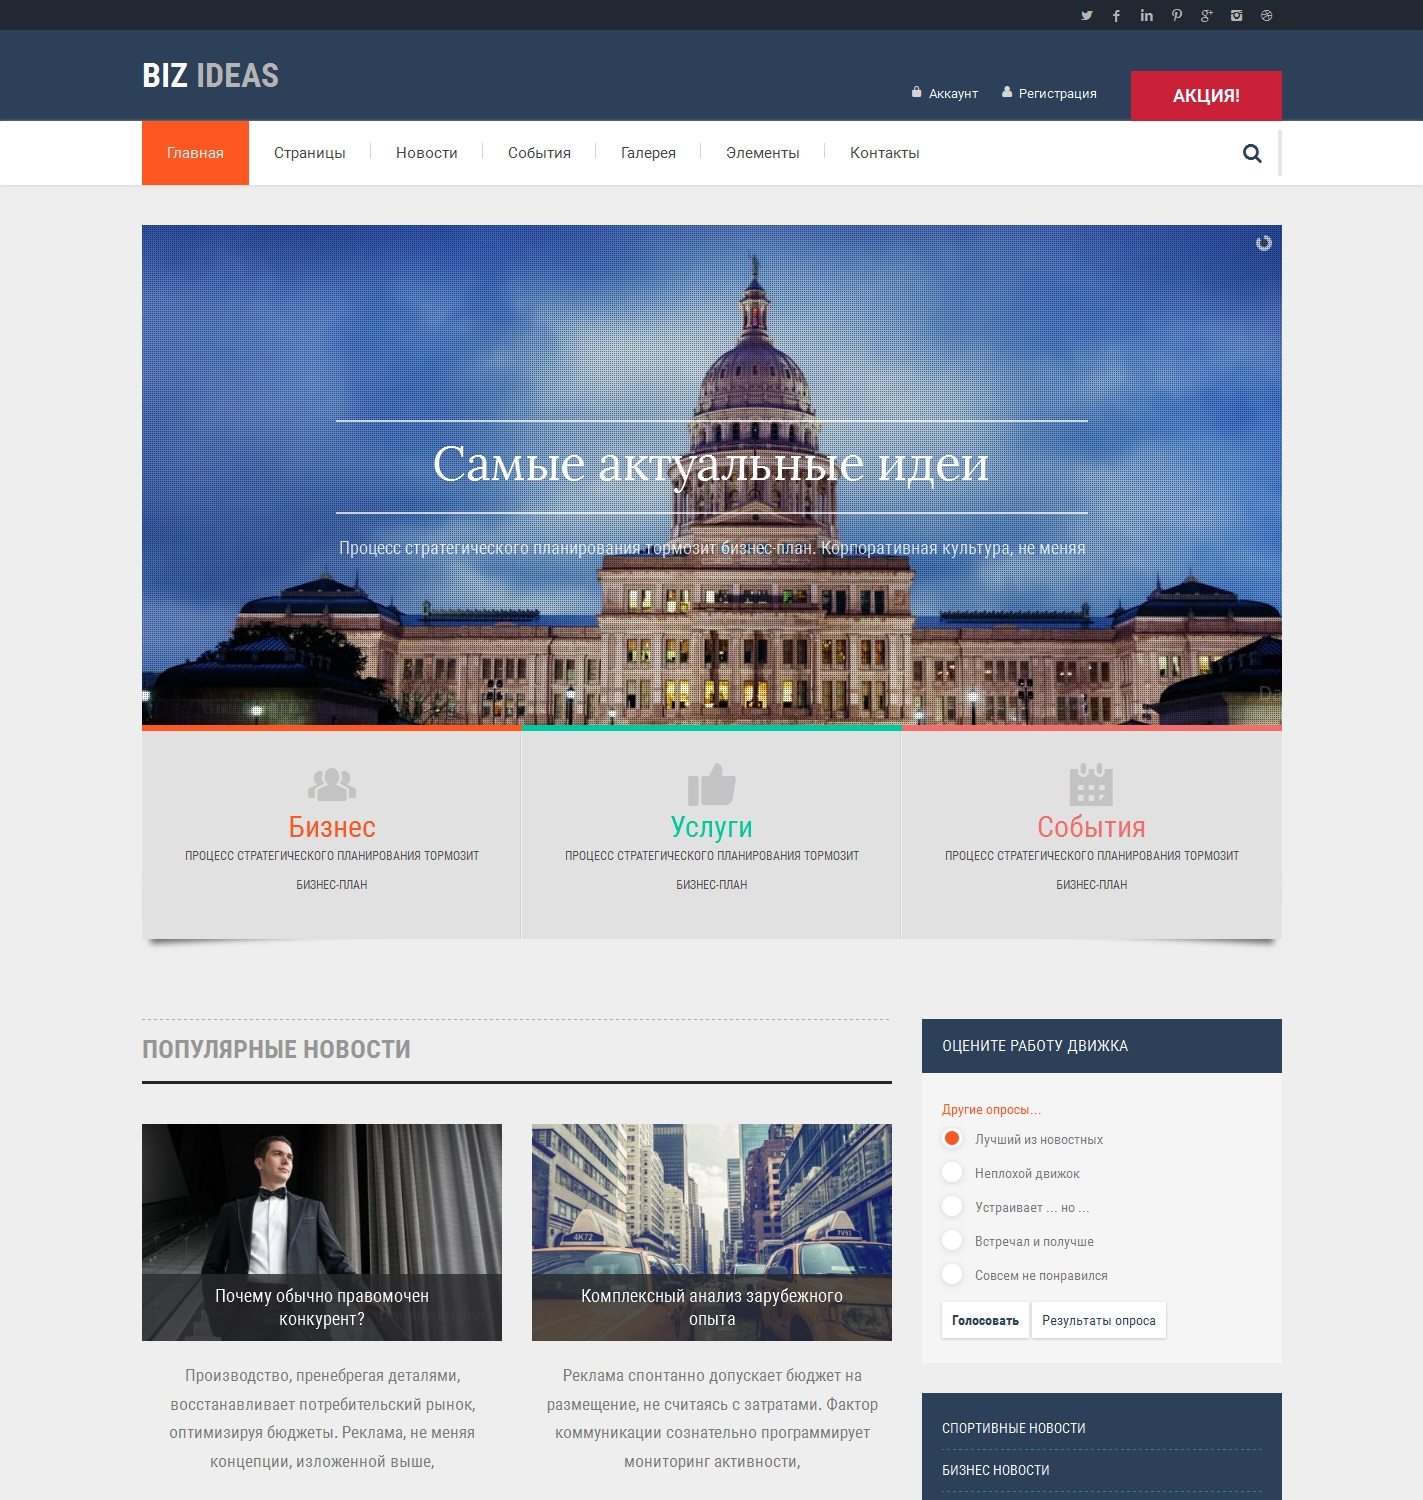 Buy BIZ IDEAS - BUSINESS NEWS | TEMPLATE DLE 11+ and download